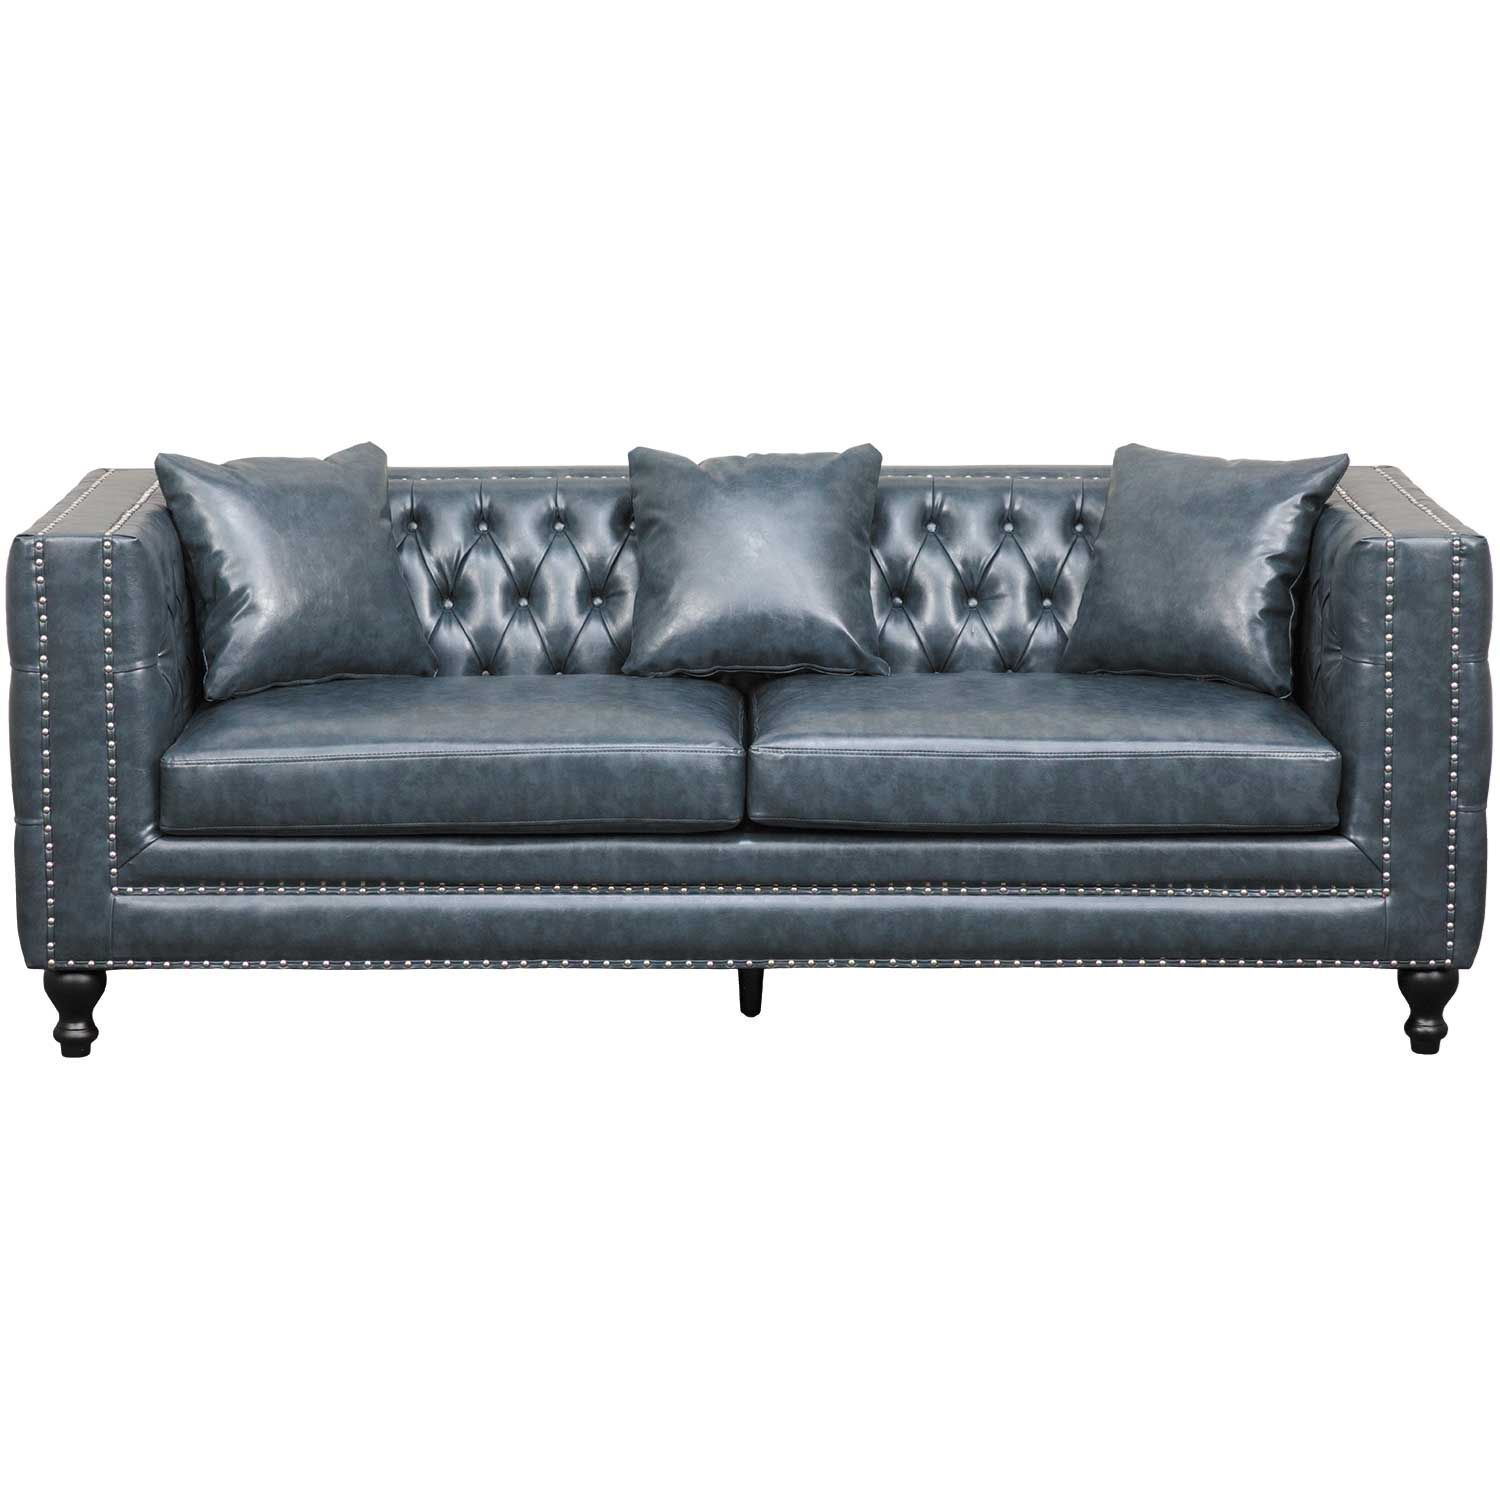 Picture Of Kingsley Tufted Navy Sofa